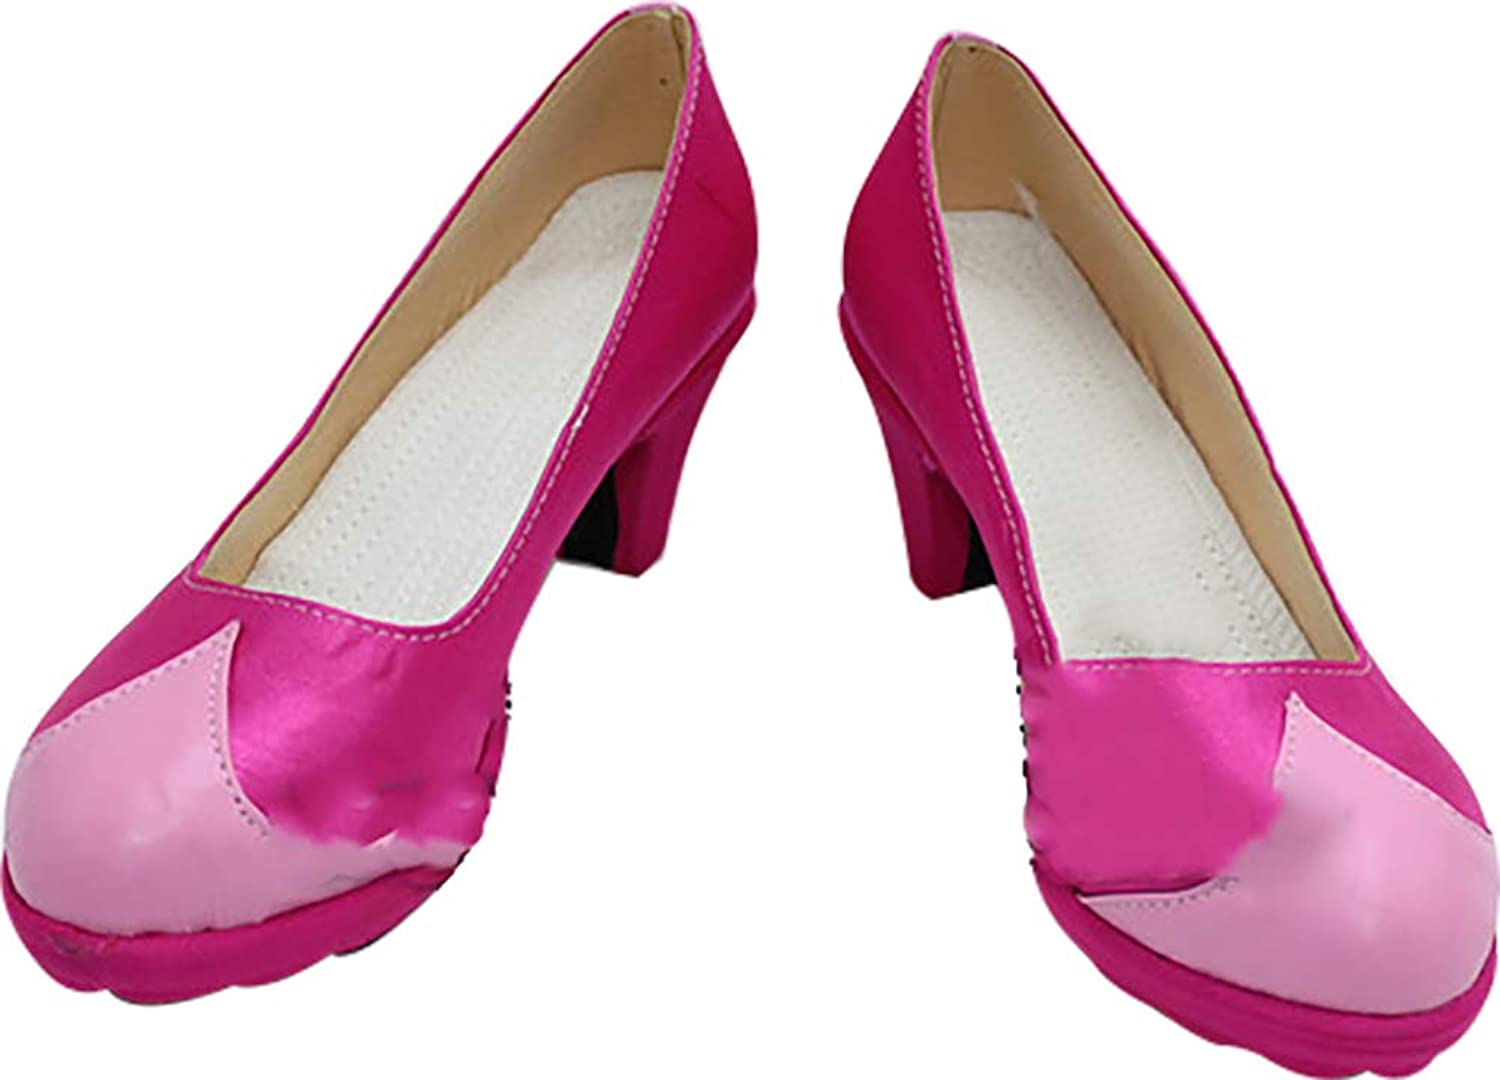 Whirl Cosplay Boots shoes for League of Legends Ahri Pink